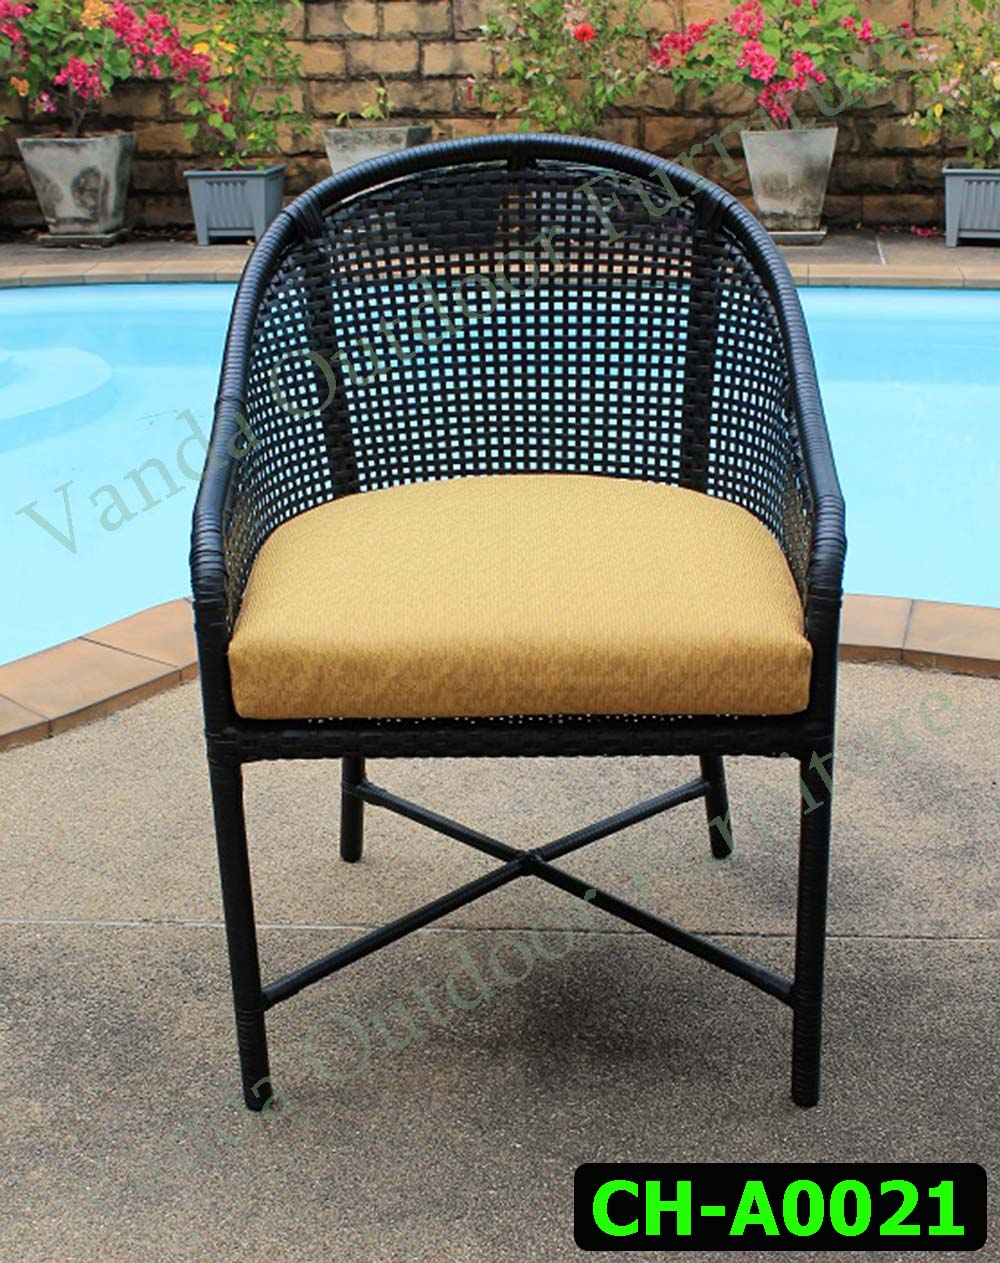 Rattan Chair Product code CH-A0021